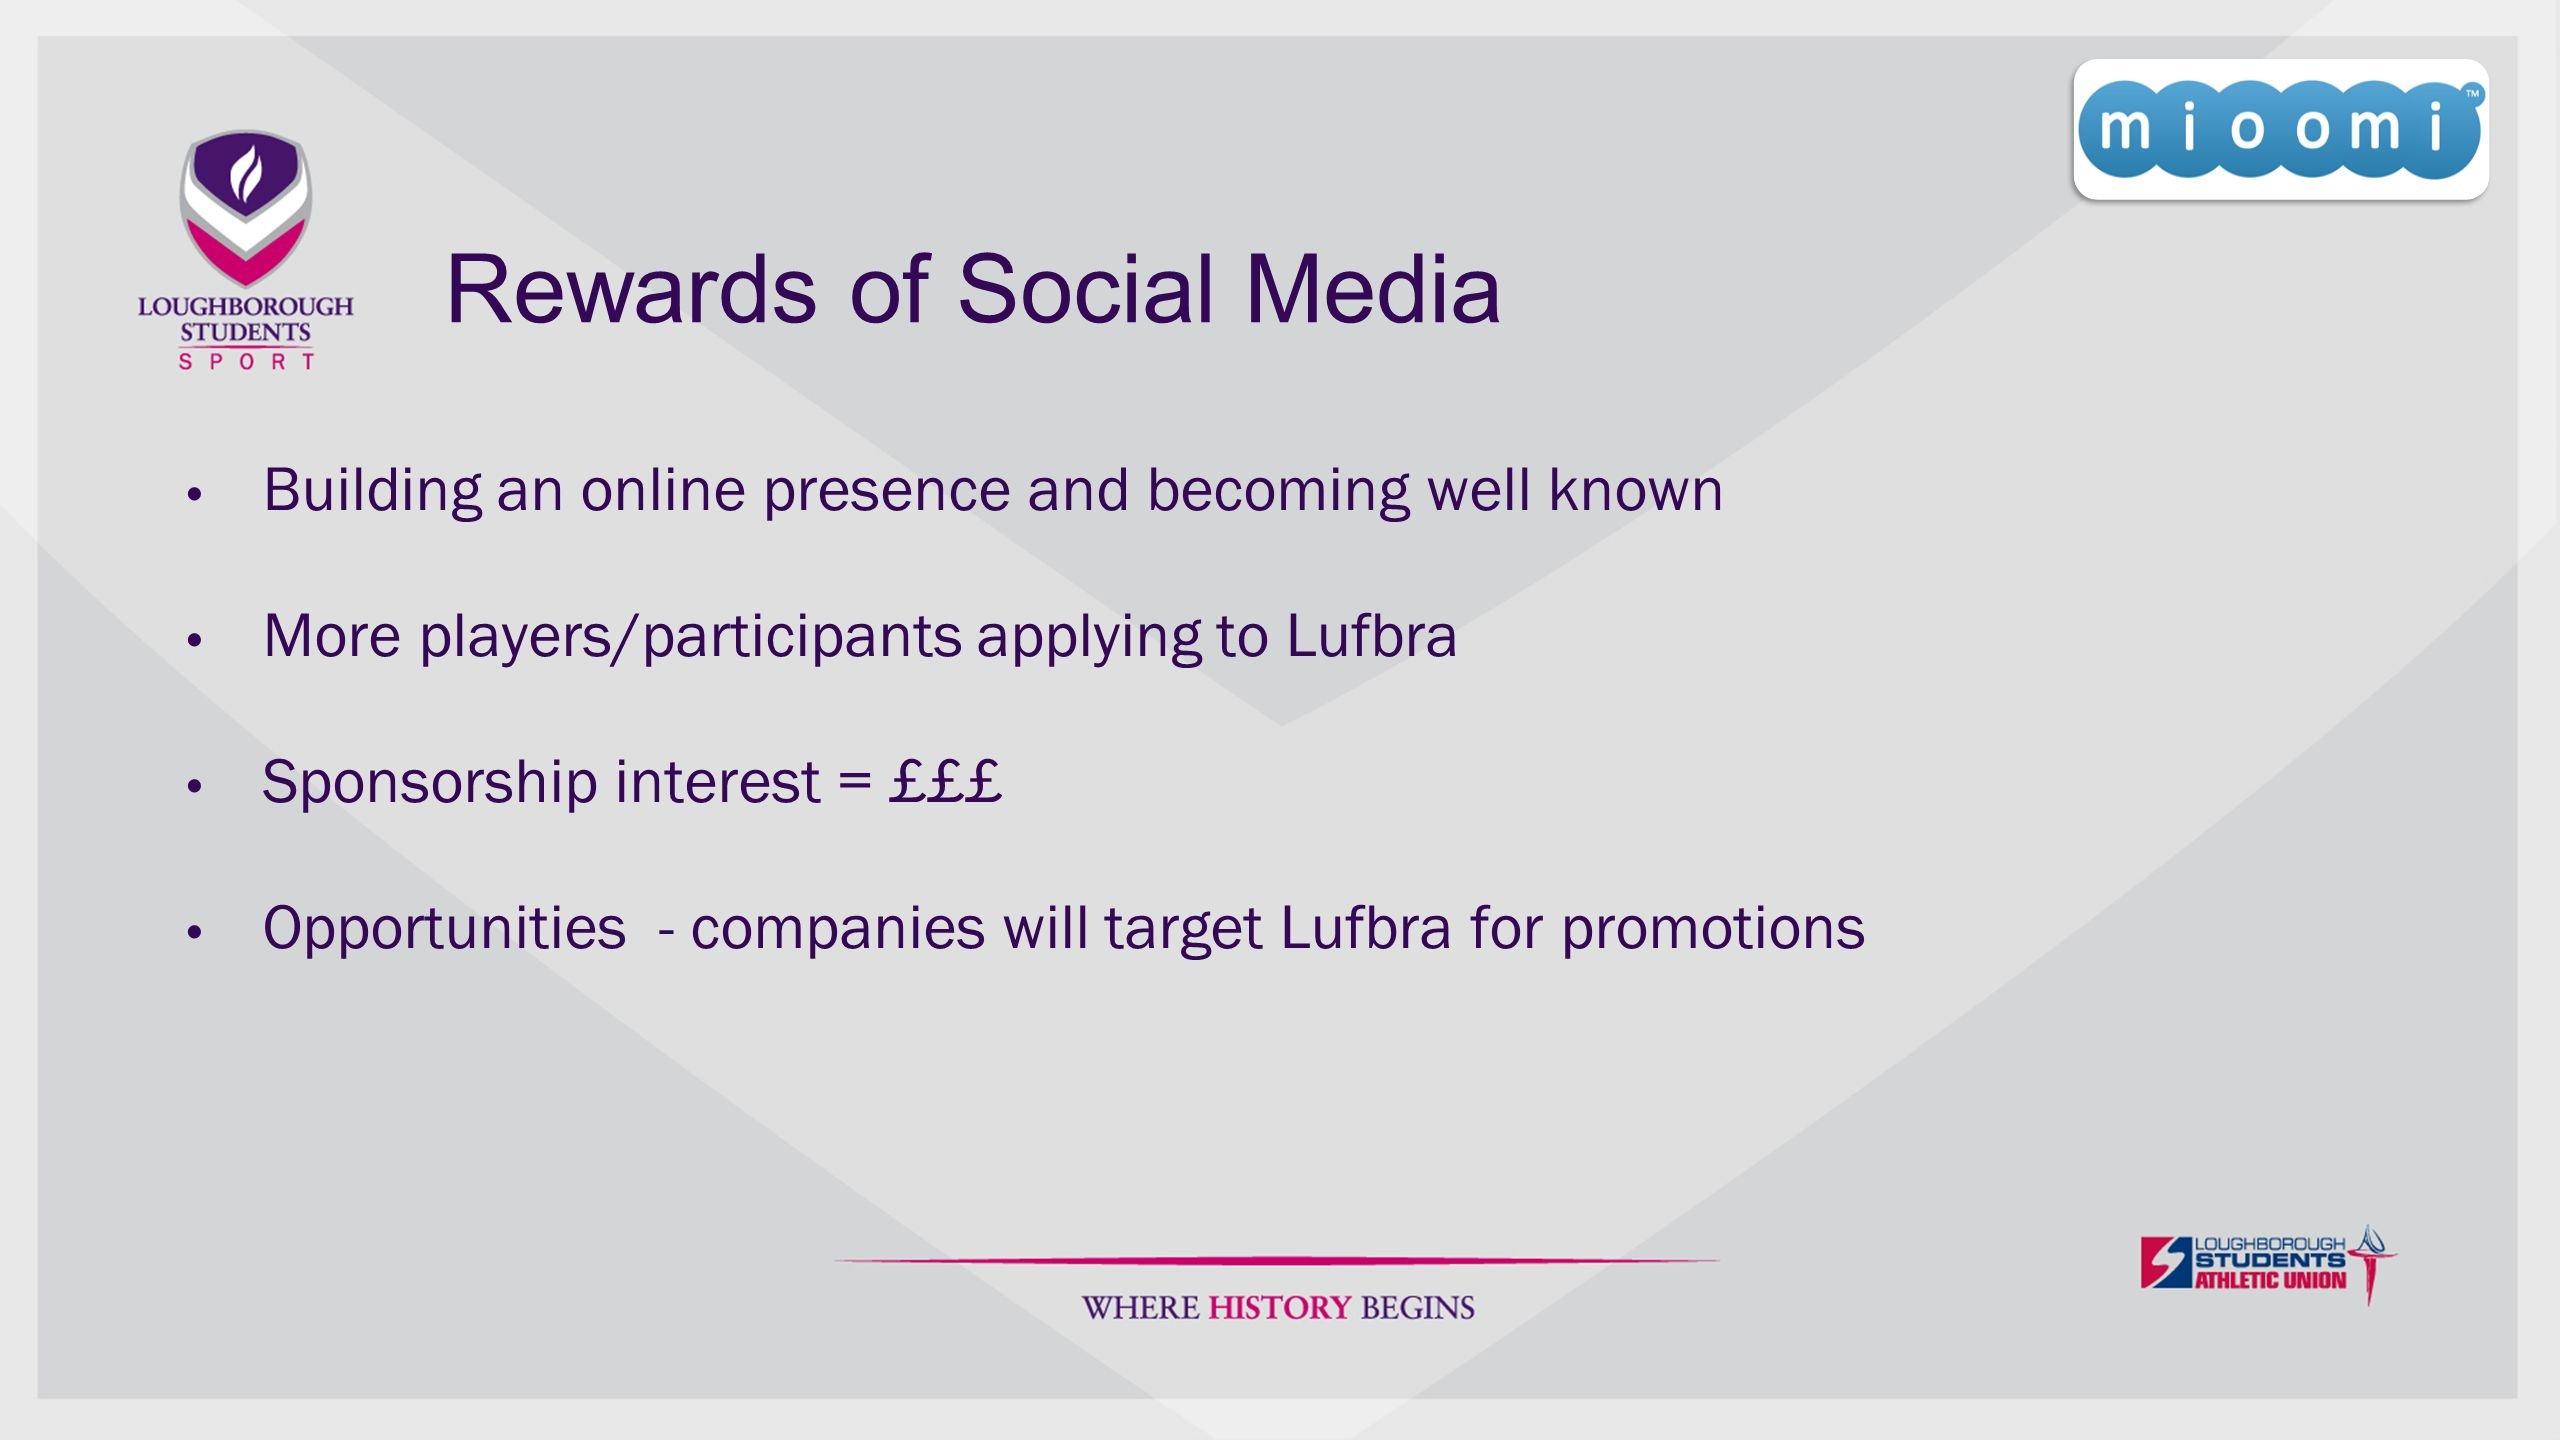 Rewards of Social Media Building an online presence and becoming well known More players/participants applying to Lufbra Sponsorship interest = £££ Op